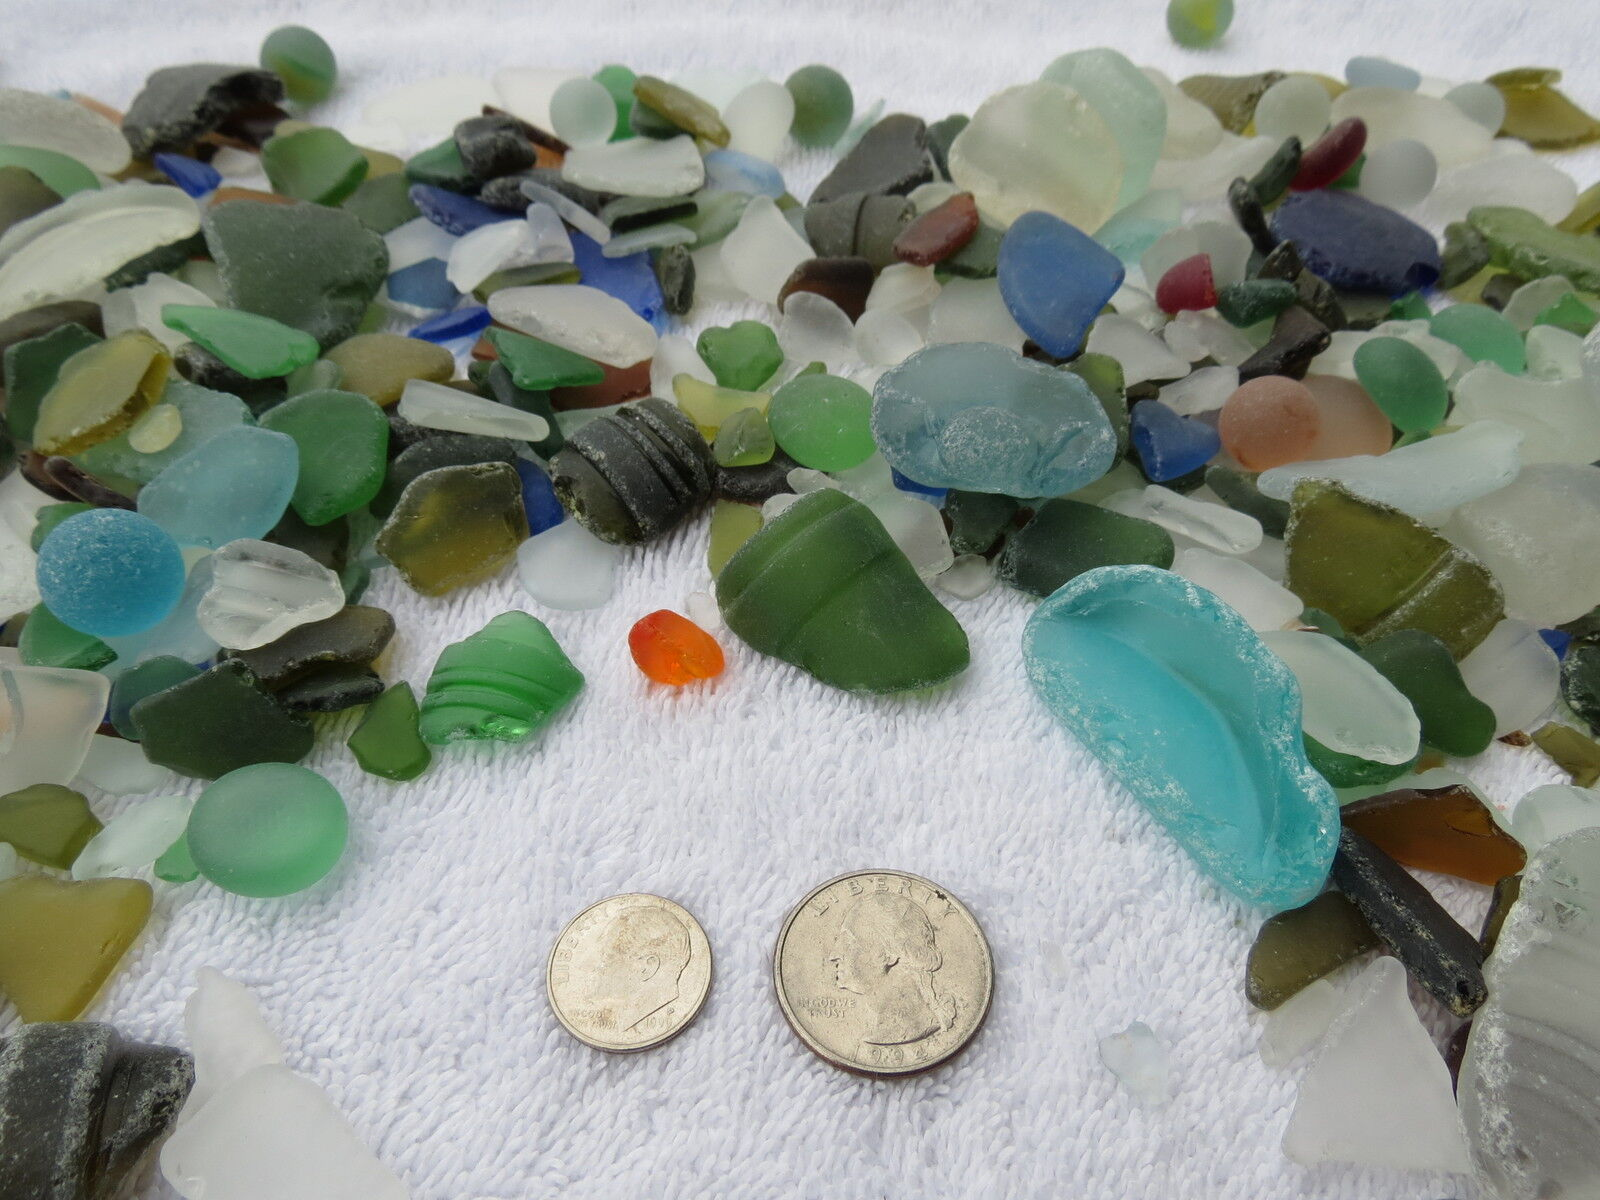 3 POUNDS MACHINE MADE RECYCLED TUMBLED BEACH SEA GLASS DECORATION